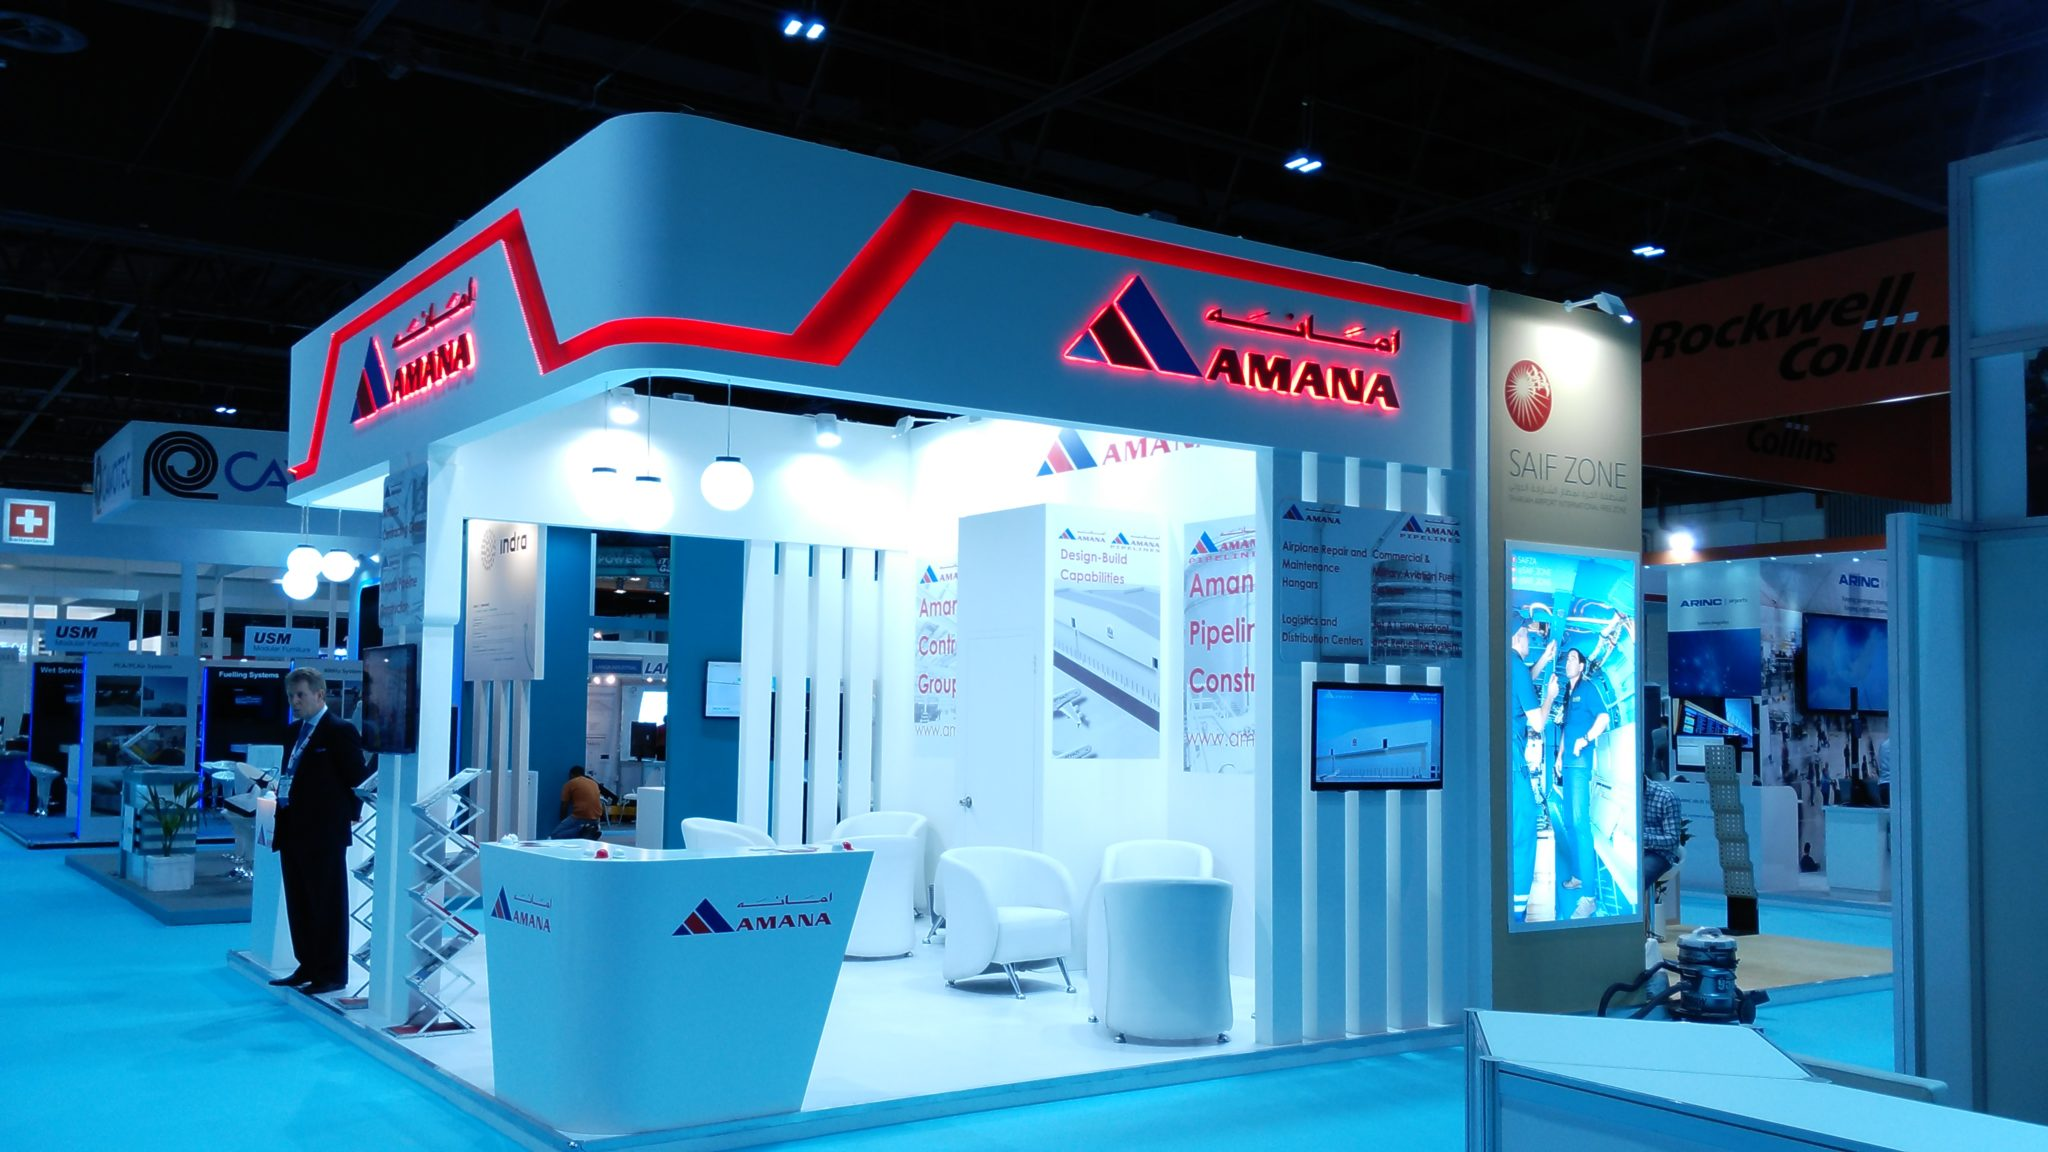 Amana Stand at Airport Show